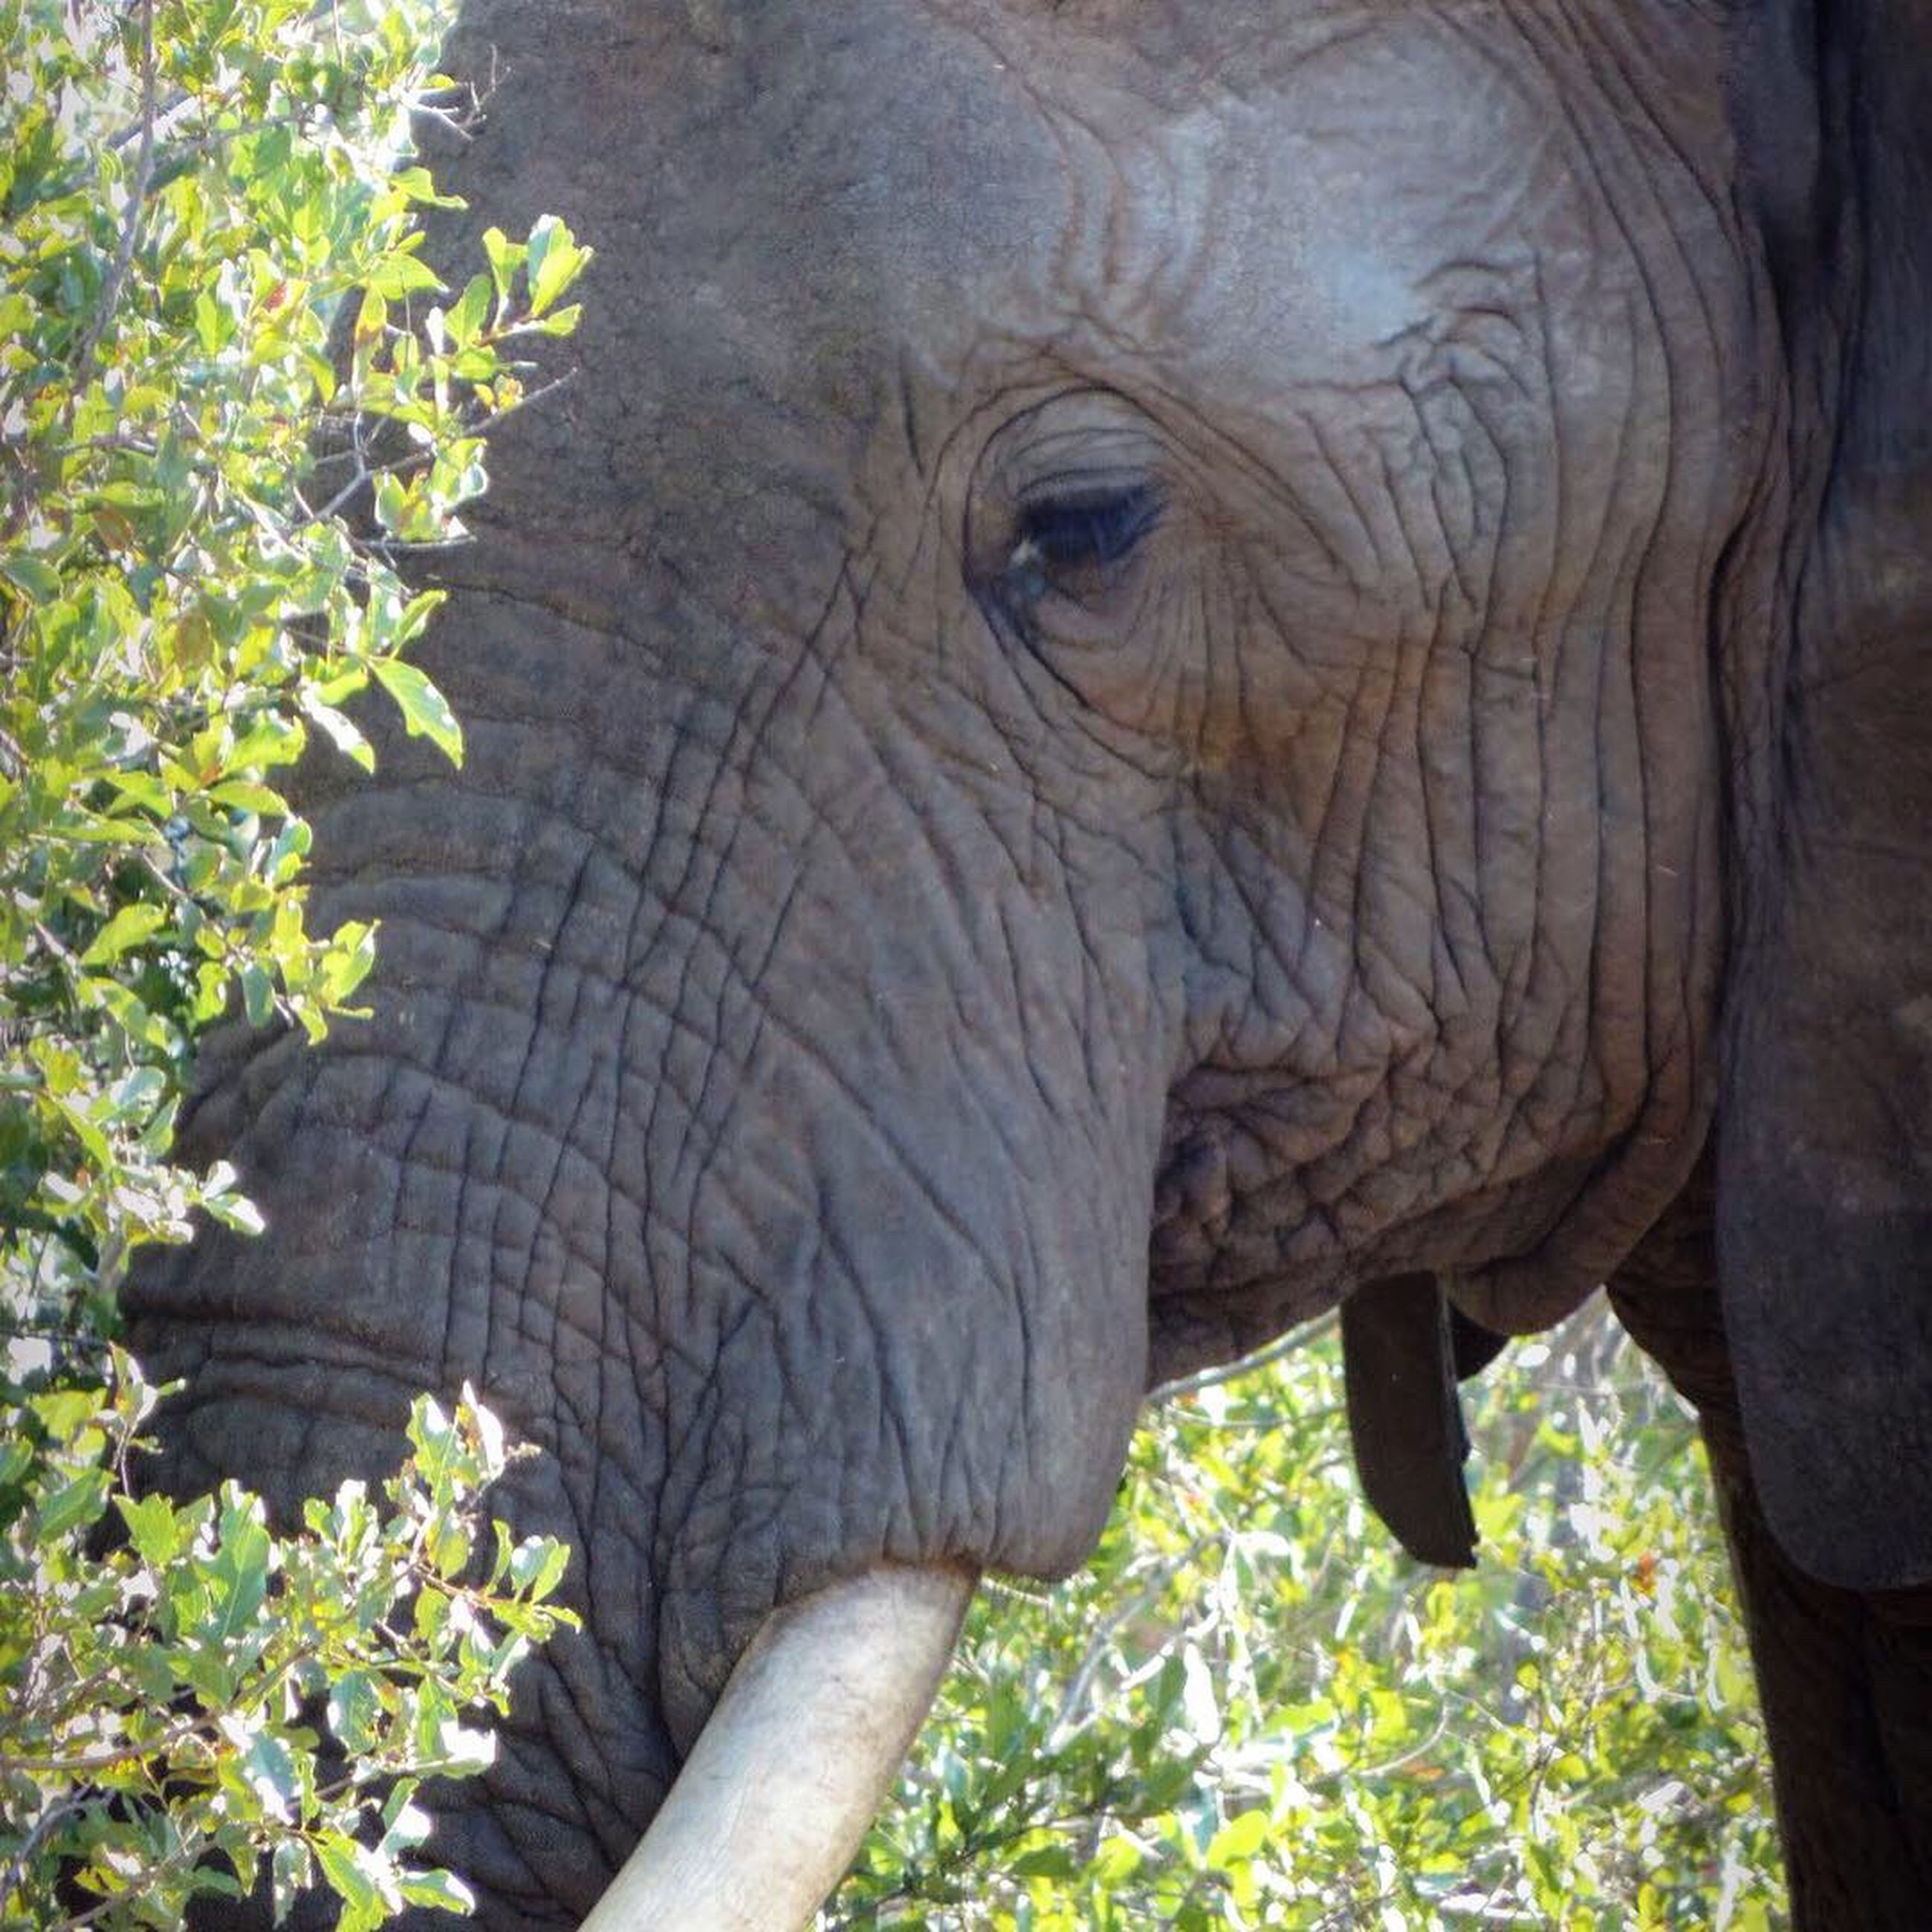 animal themes, animal, one animal, animal wildlife, mammal, animals in the wild, elephant, animal body part, plant, day, nature, no people, vertebrate, safari, animal head, outdoors, close-up, tusk, sunlight, herbivorous, animal trunk, african elephant, profile view